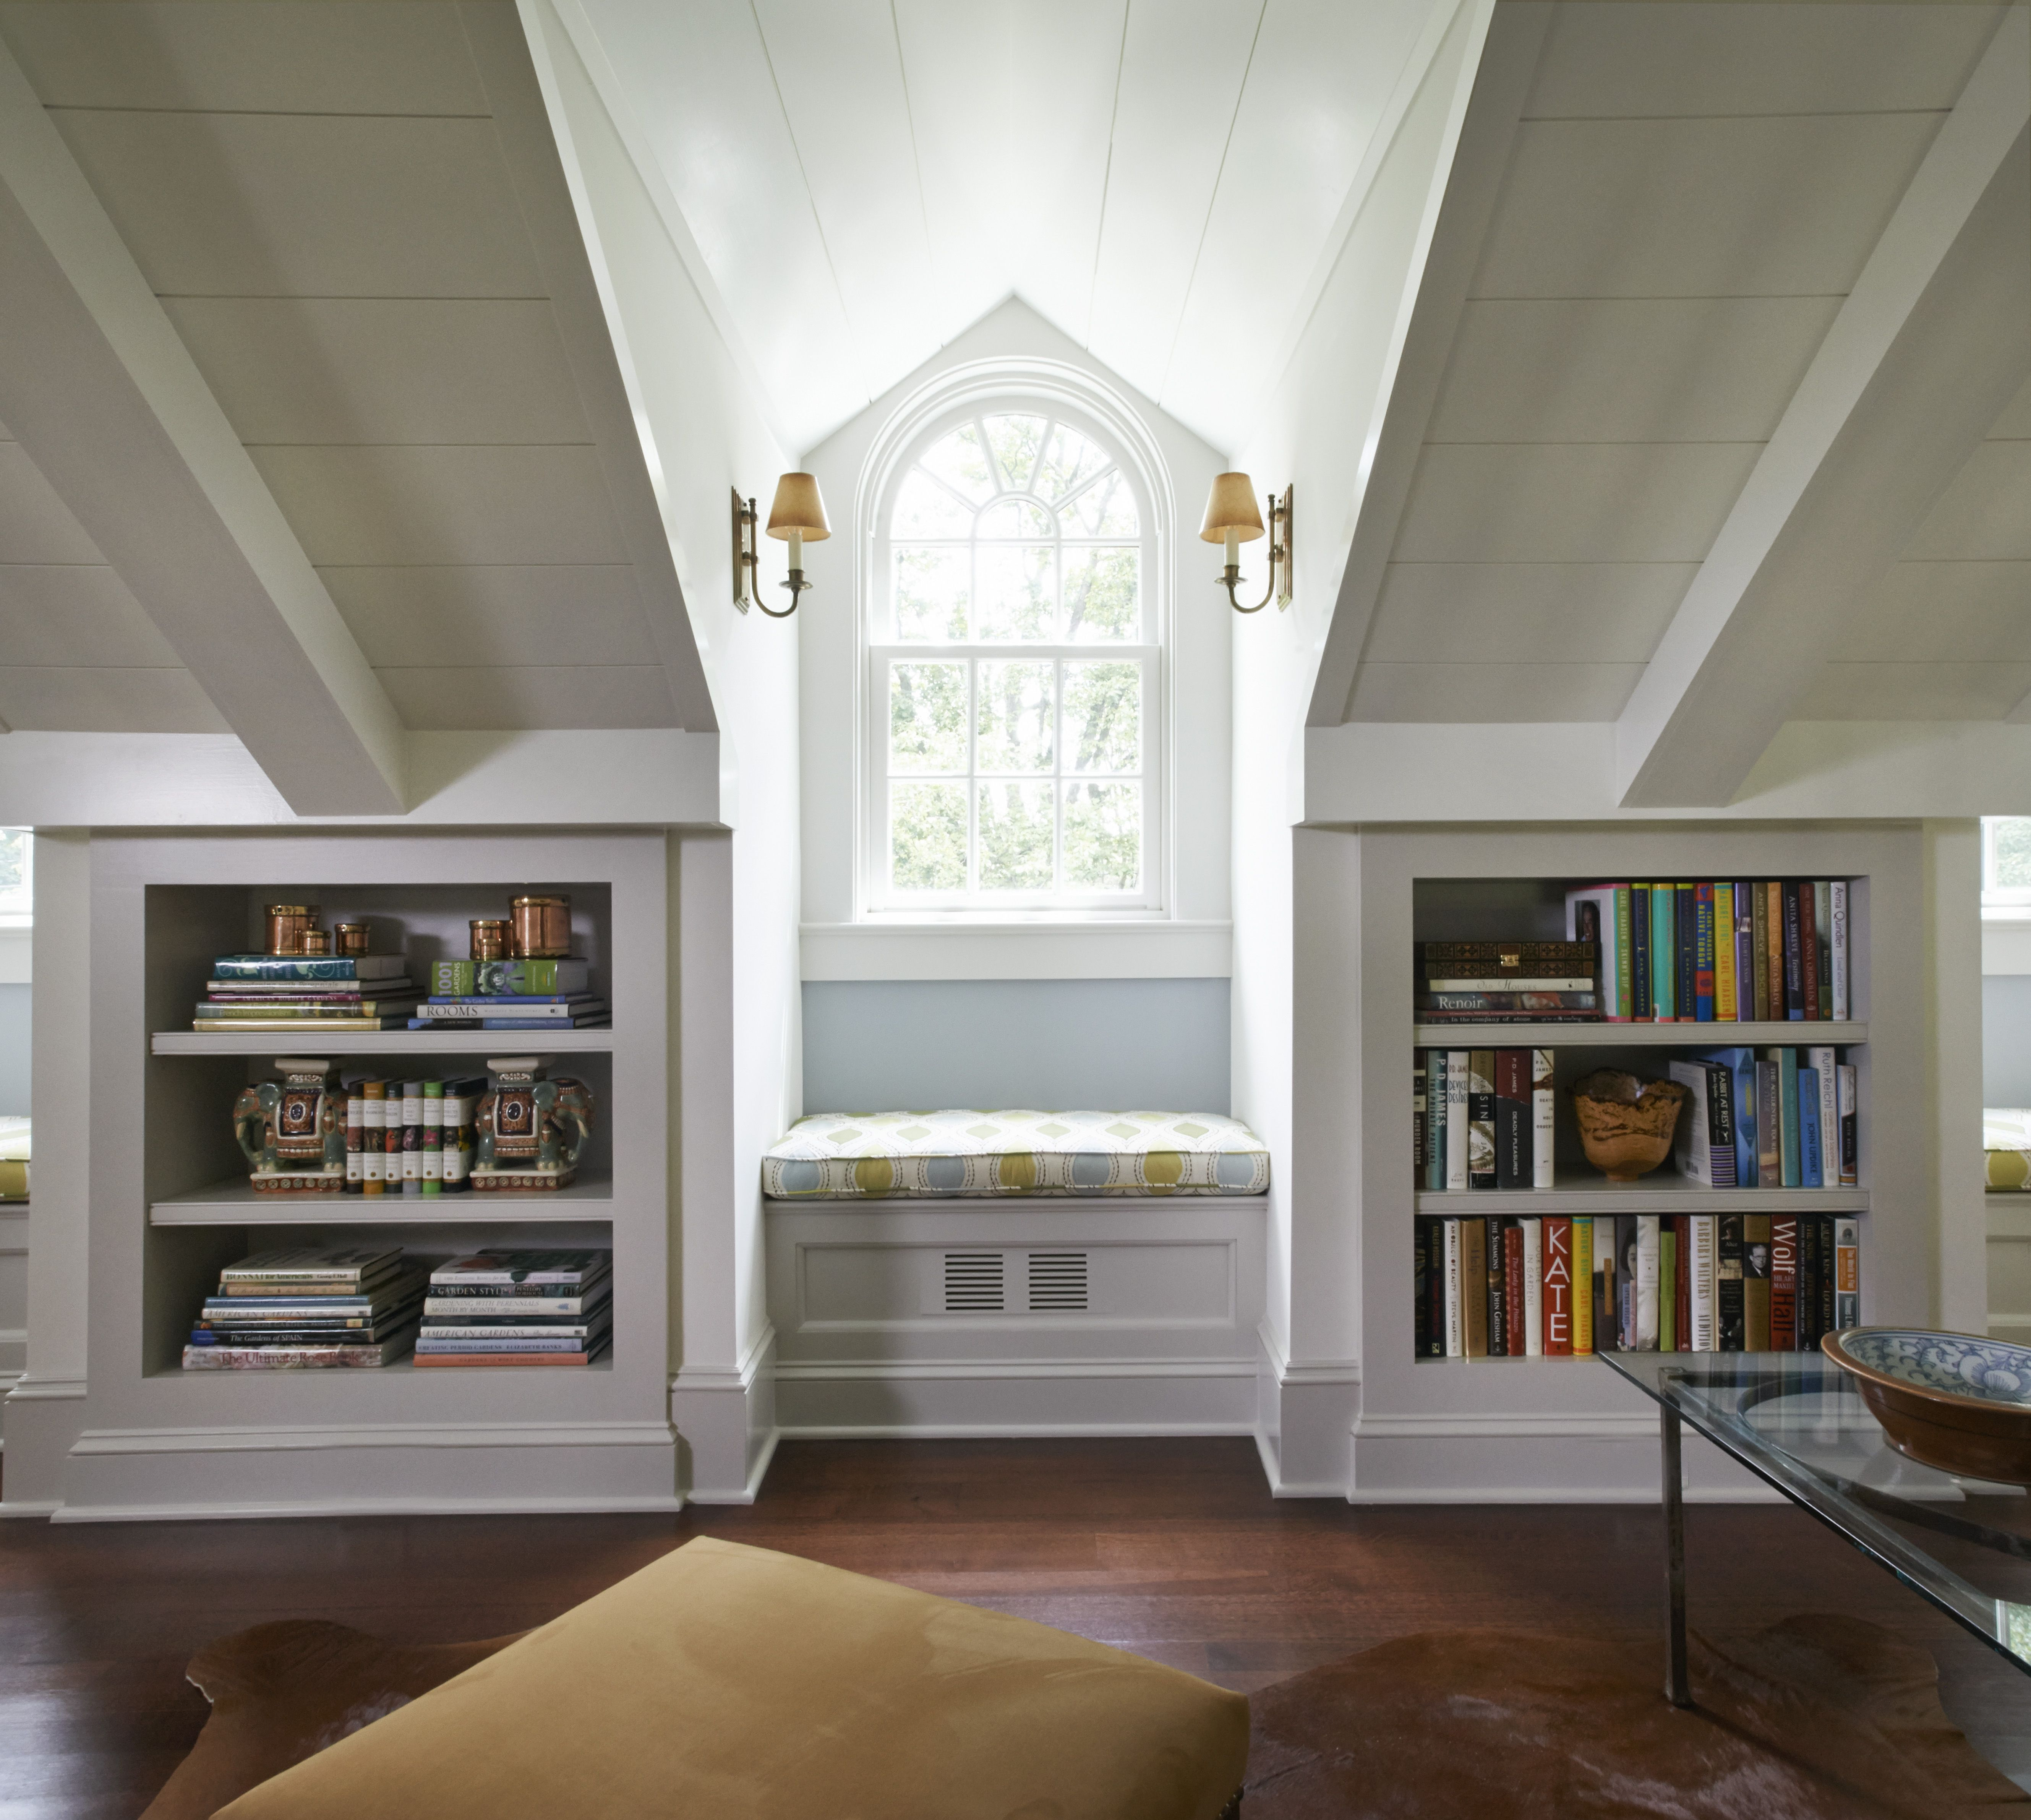 fairfield ct brooks and falotico associates fairfield county architects nooks crannies. Black Bedroom Furniture Sets. Home Design Ideas